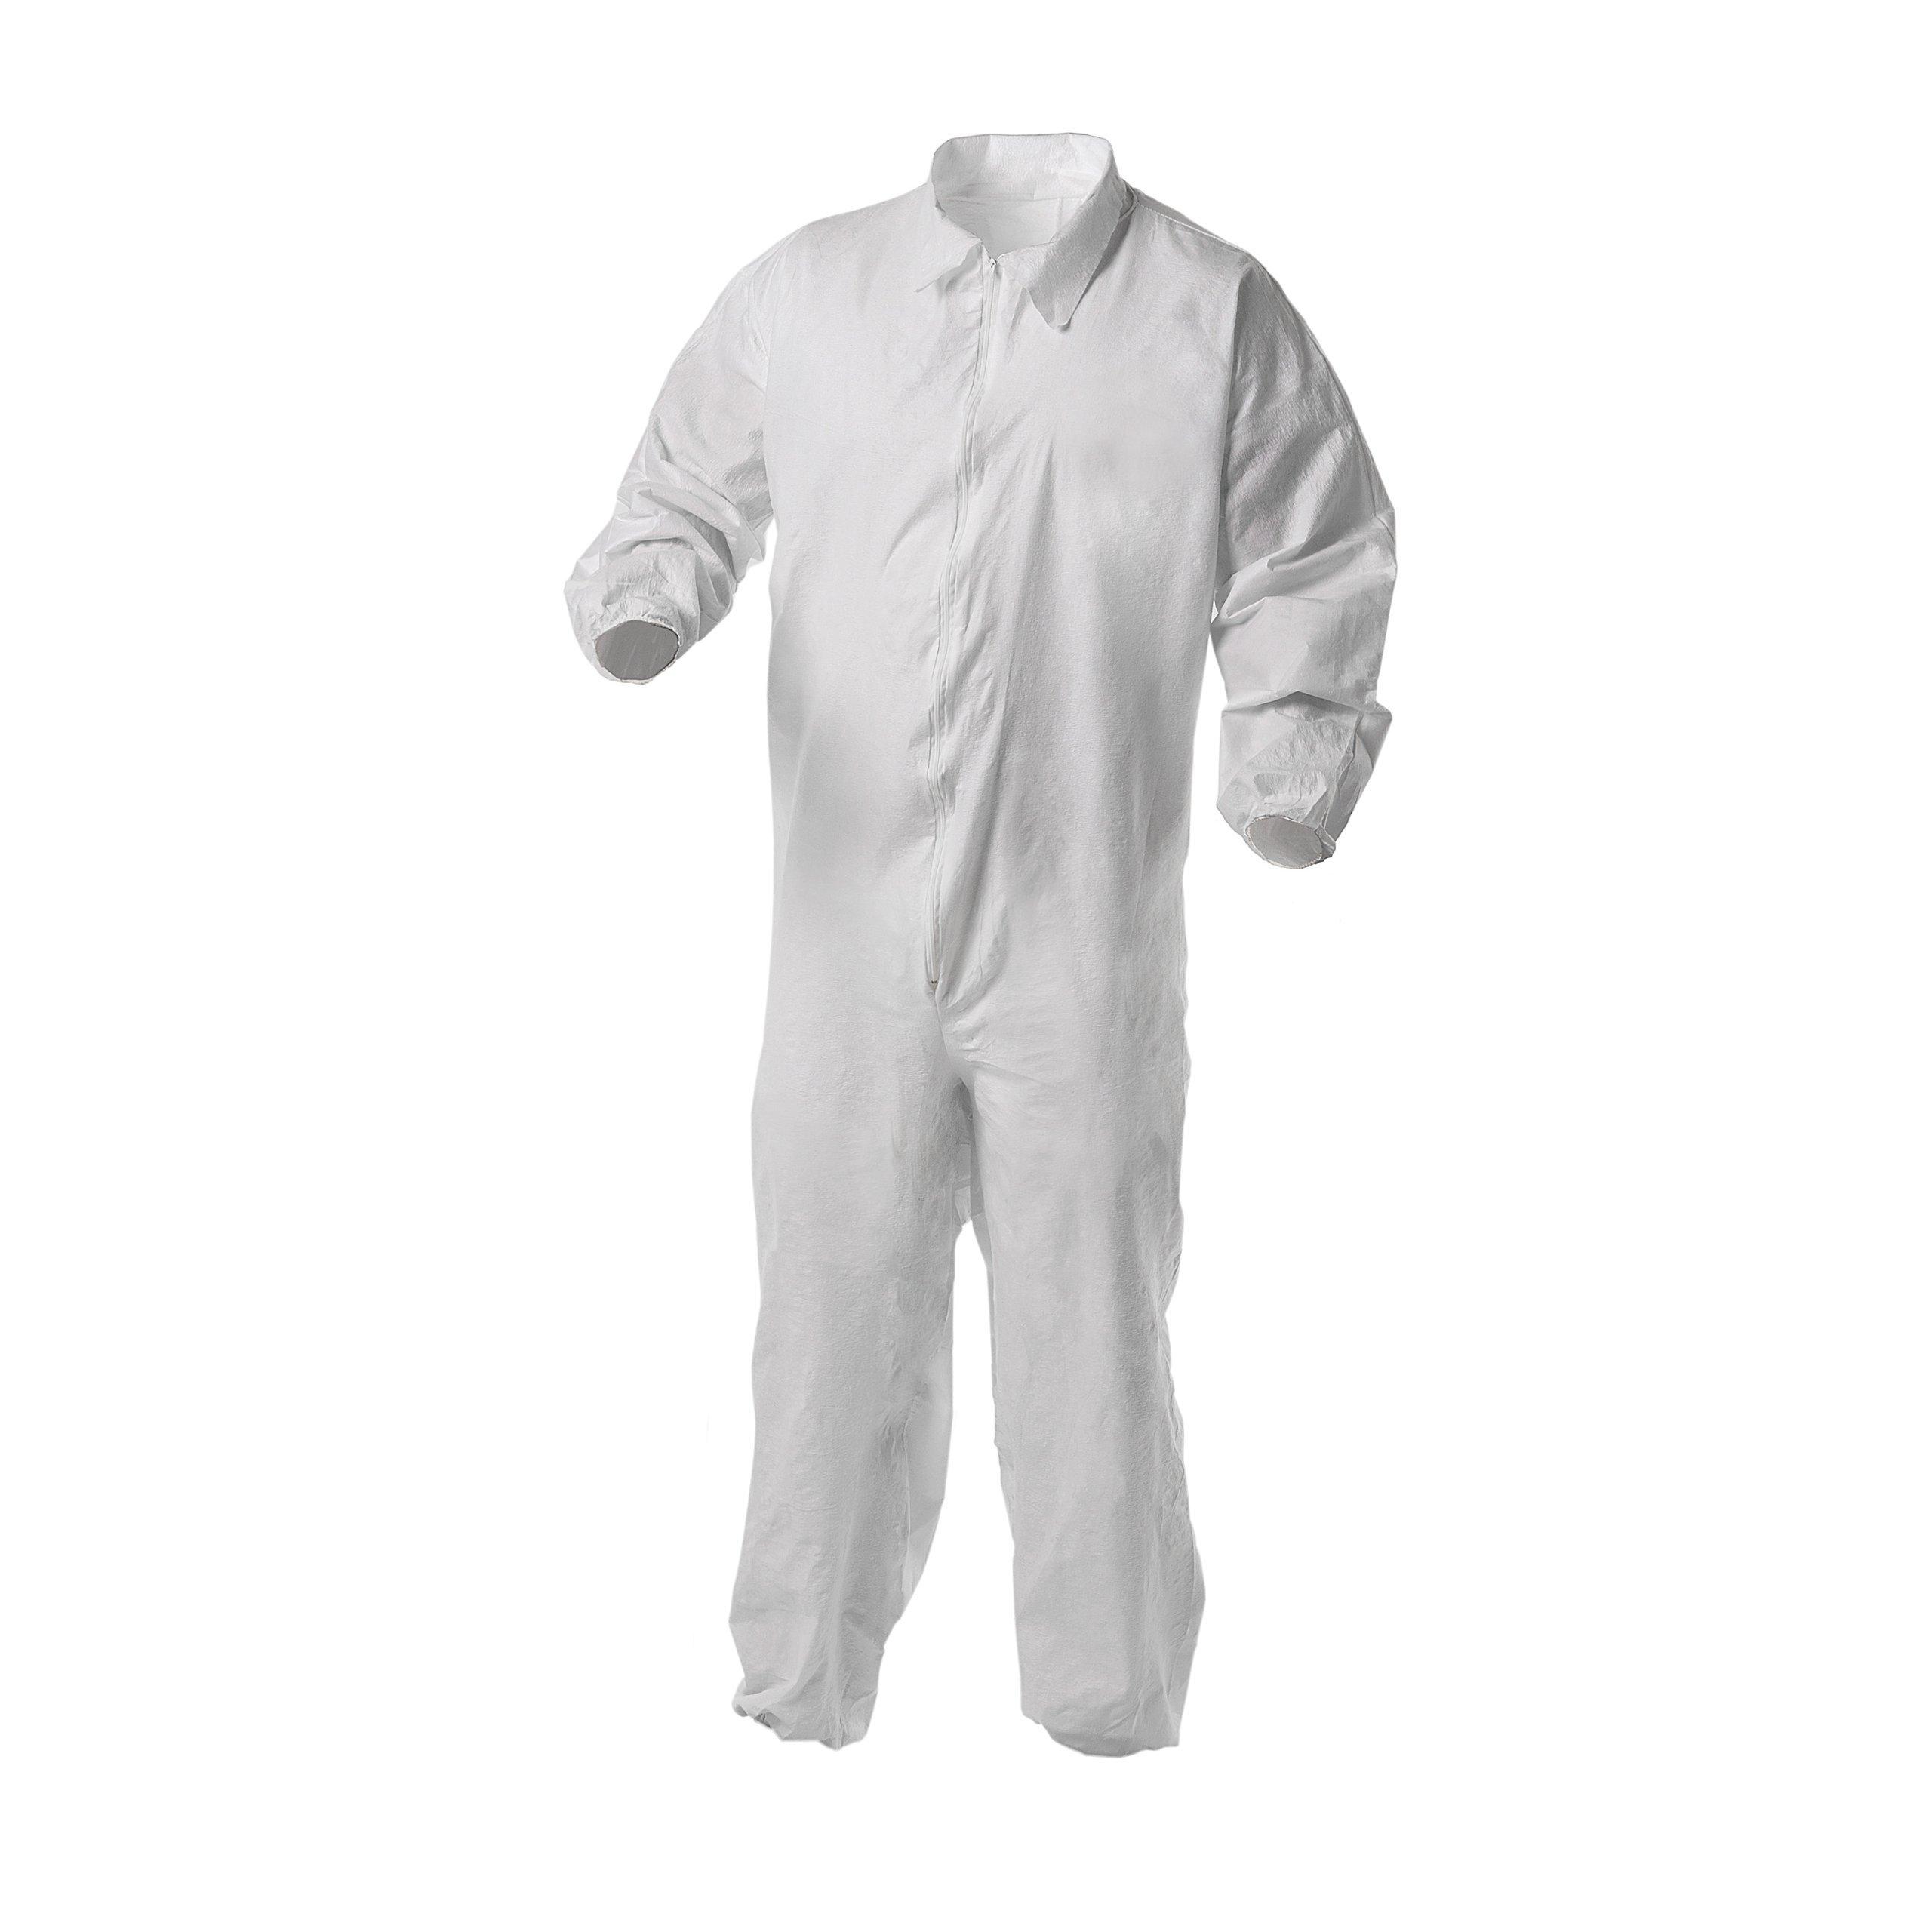 Kleenguard A35 Disposable Coveralls (38930), Liquid and Particle Protection, Zip Front, Elastic Wrists & Ankles (EWA), White, 2XL, 25 Garments/Case